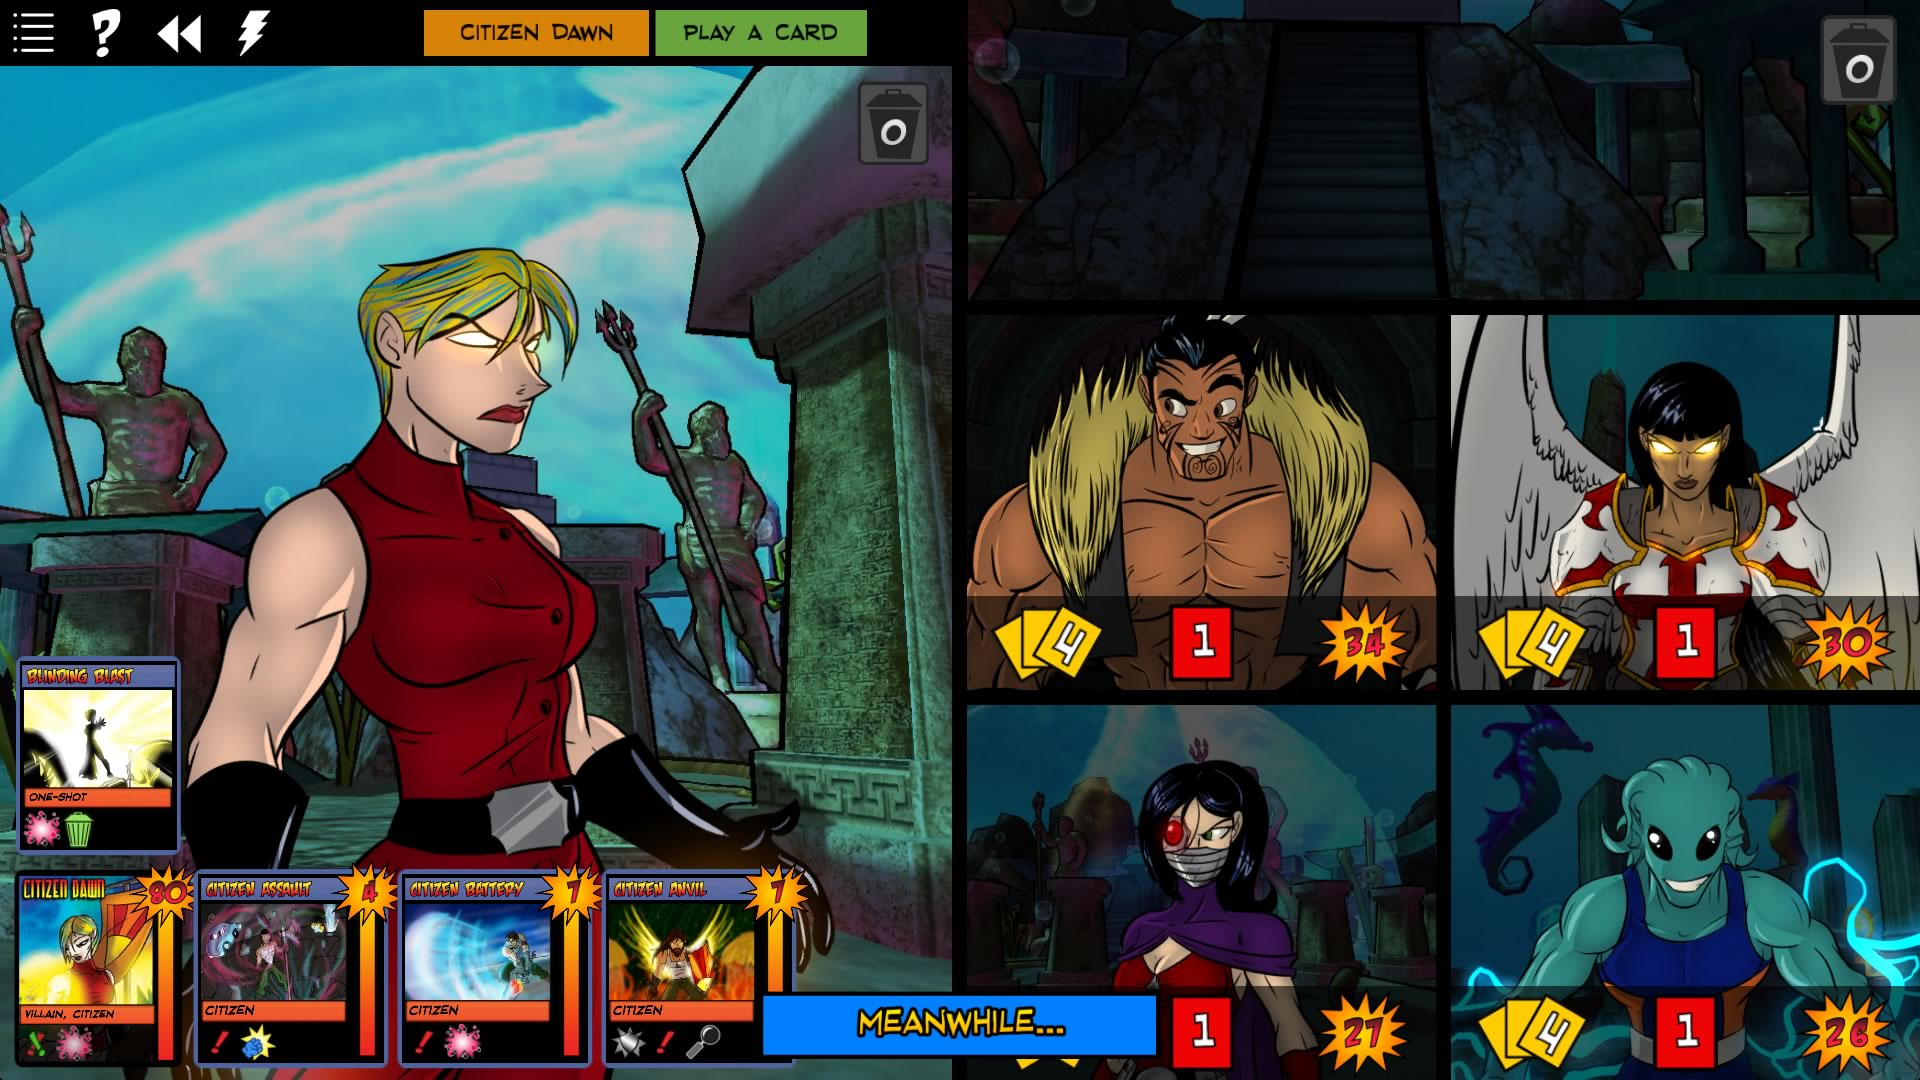 Over the past couple of years, I've been regularly playing digital boardgames online on Steam with one of my friend groups, I thought I'd do reviews of them. The first one is Sentinels of the Multiverse. We've played the IRL boardgame of it before during one of our sporadic in-person meetups. If you're not familiar, it's a comics-themed coop game where up to 4 people play as a group of heroes to beat a villain (basically comic book shenanigans). There is a large variety of heroes available to play, each with unique abilities and play styles. Some of them are